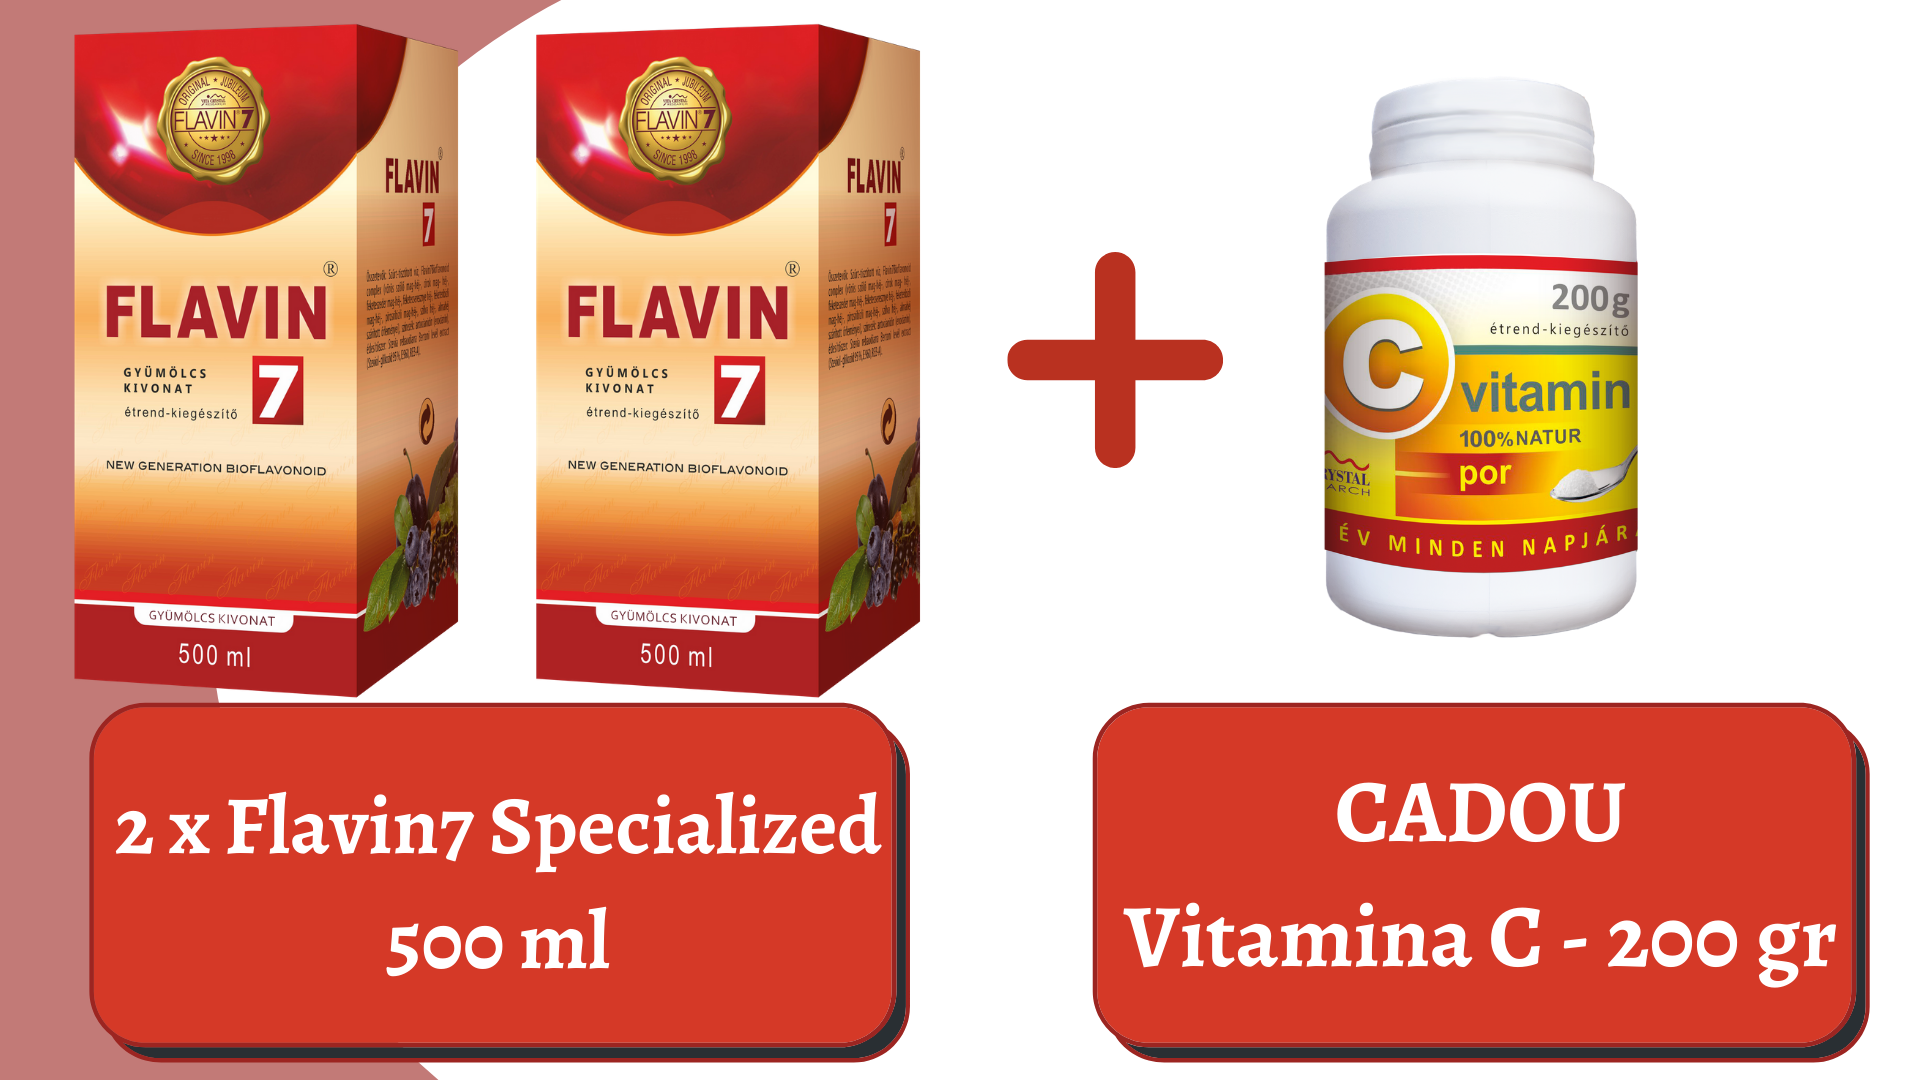 PROMO 2x Flavin7 Specialized + Vitamina C 200gr. pulbere